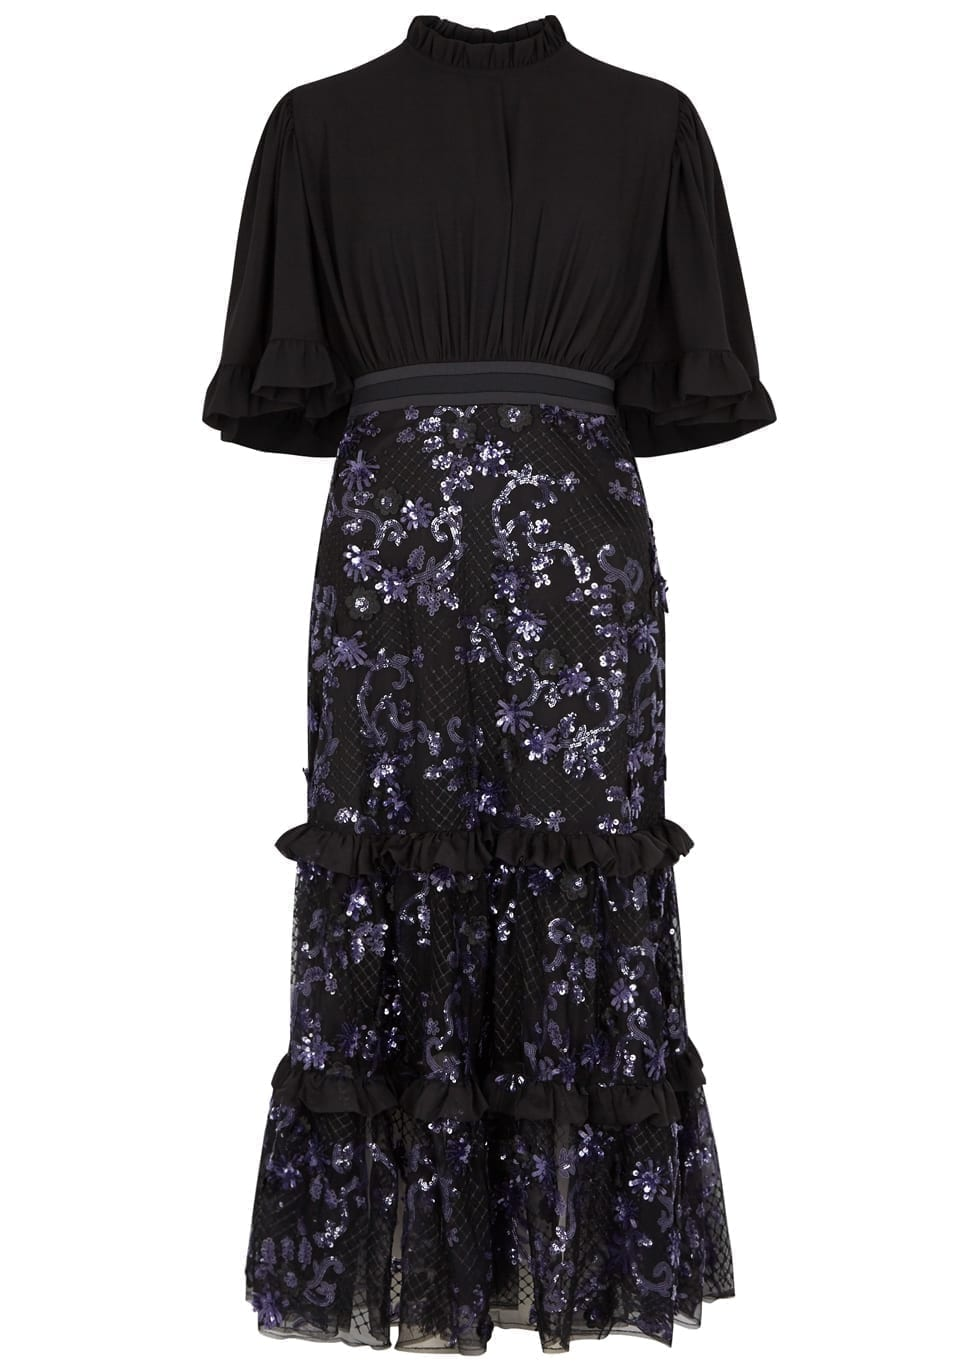 THREE FLOOR Floralicious Crepe Midi Black Dress